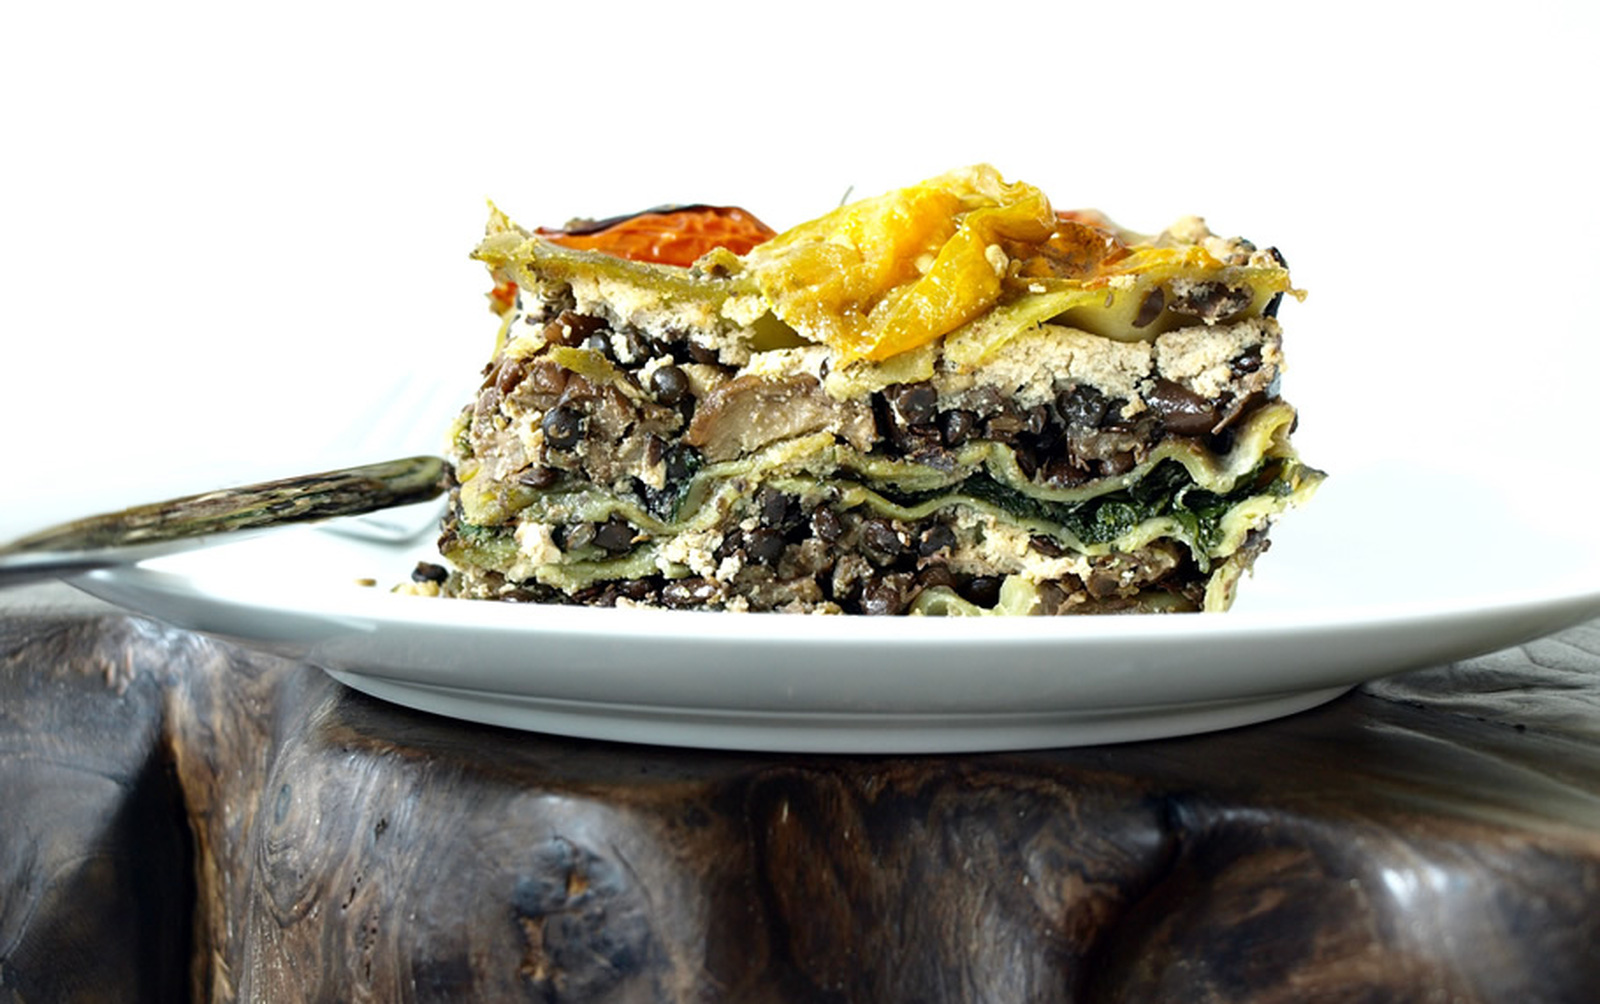 Vegan High-protein Lentil and Eggplant Lasagna